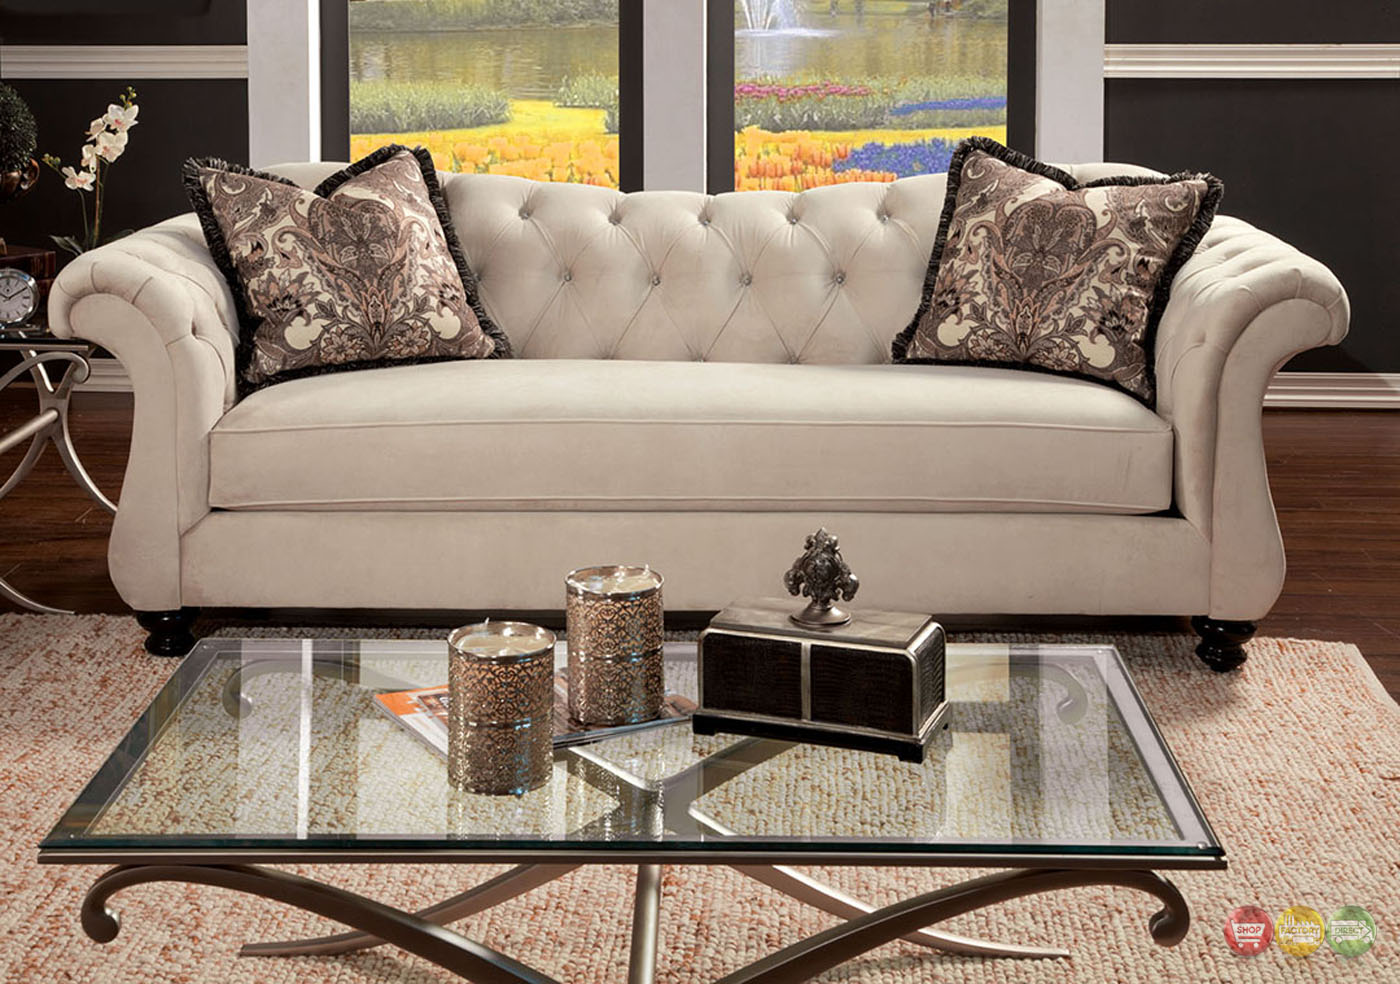 tufted sofa set modern bed chicago antoinette crystal button transitional living room